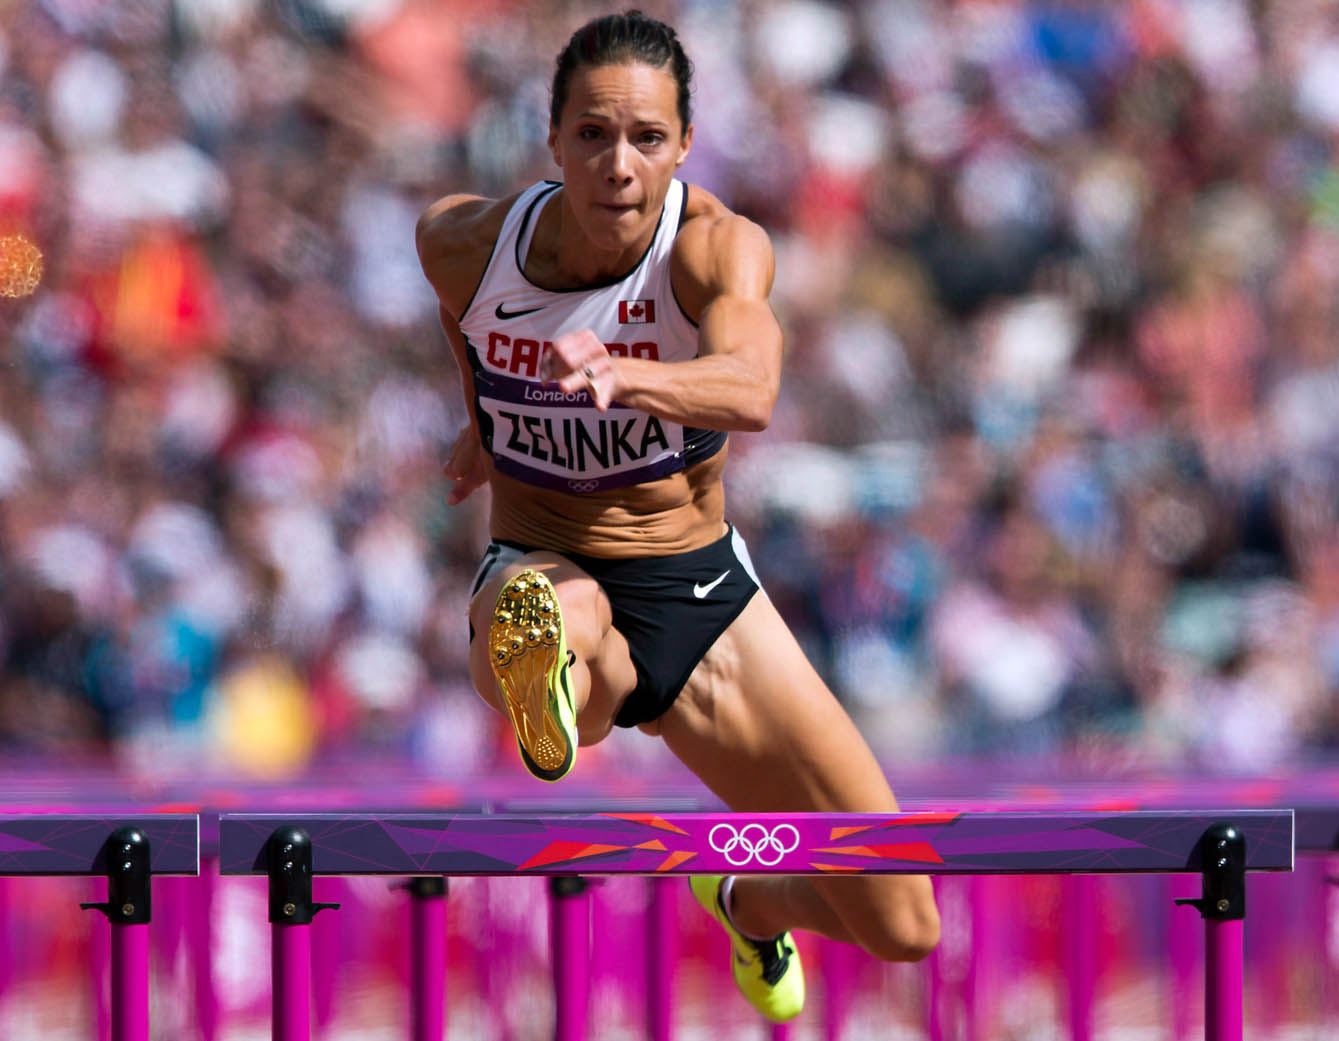 Jessica Zelinka clears the final hurdle during the 100m hurdles portion of Women's Heptathlon at the Olympic Games in London